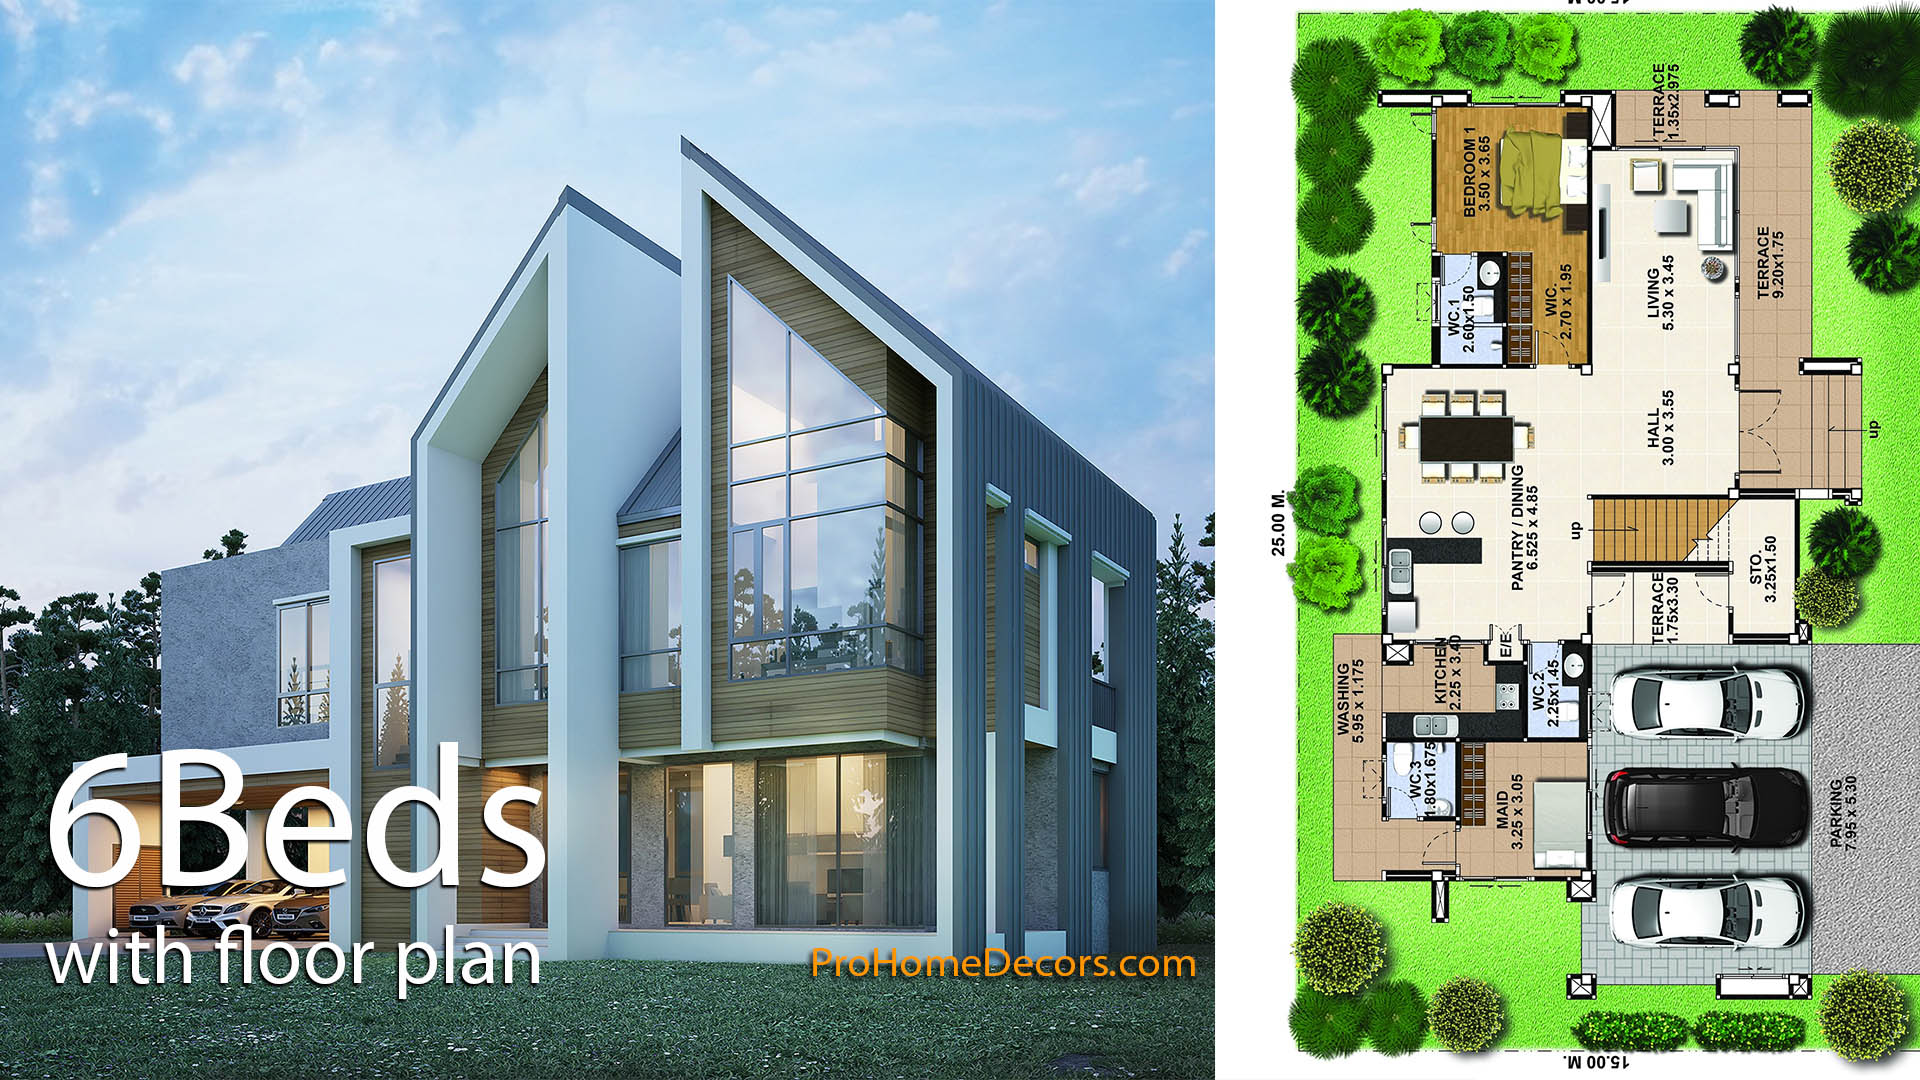 House Design Plot 25×15 with 6 Bedrooms